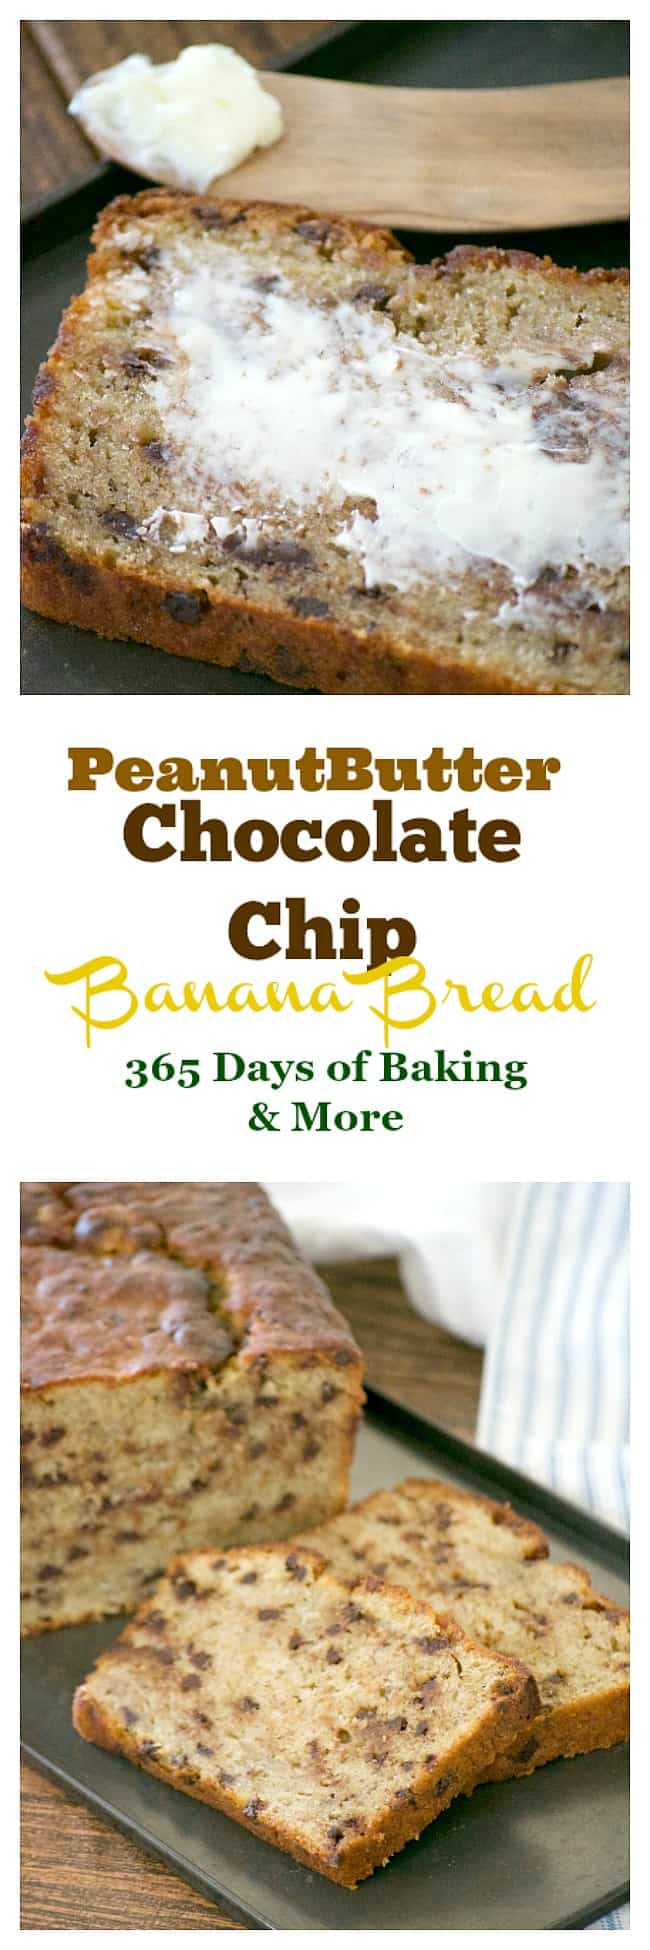 Better than regular banana bread, this easy and delicious Peanut Butter Chocolate Chip Banana Bread will bring you back to Grandma's kitchen and beyond!